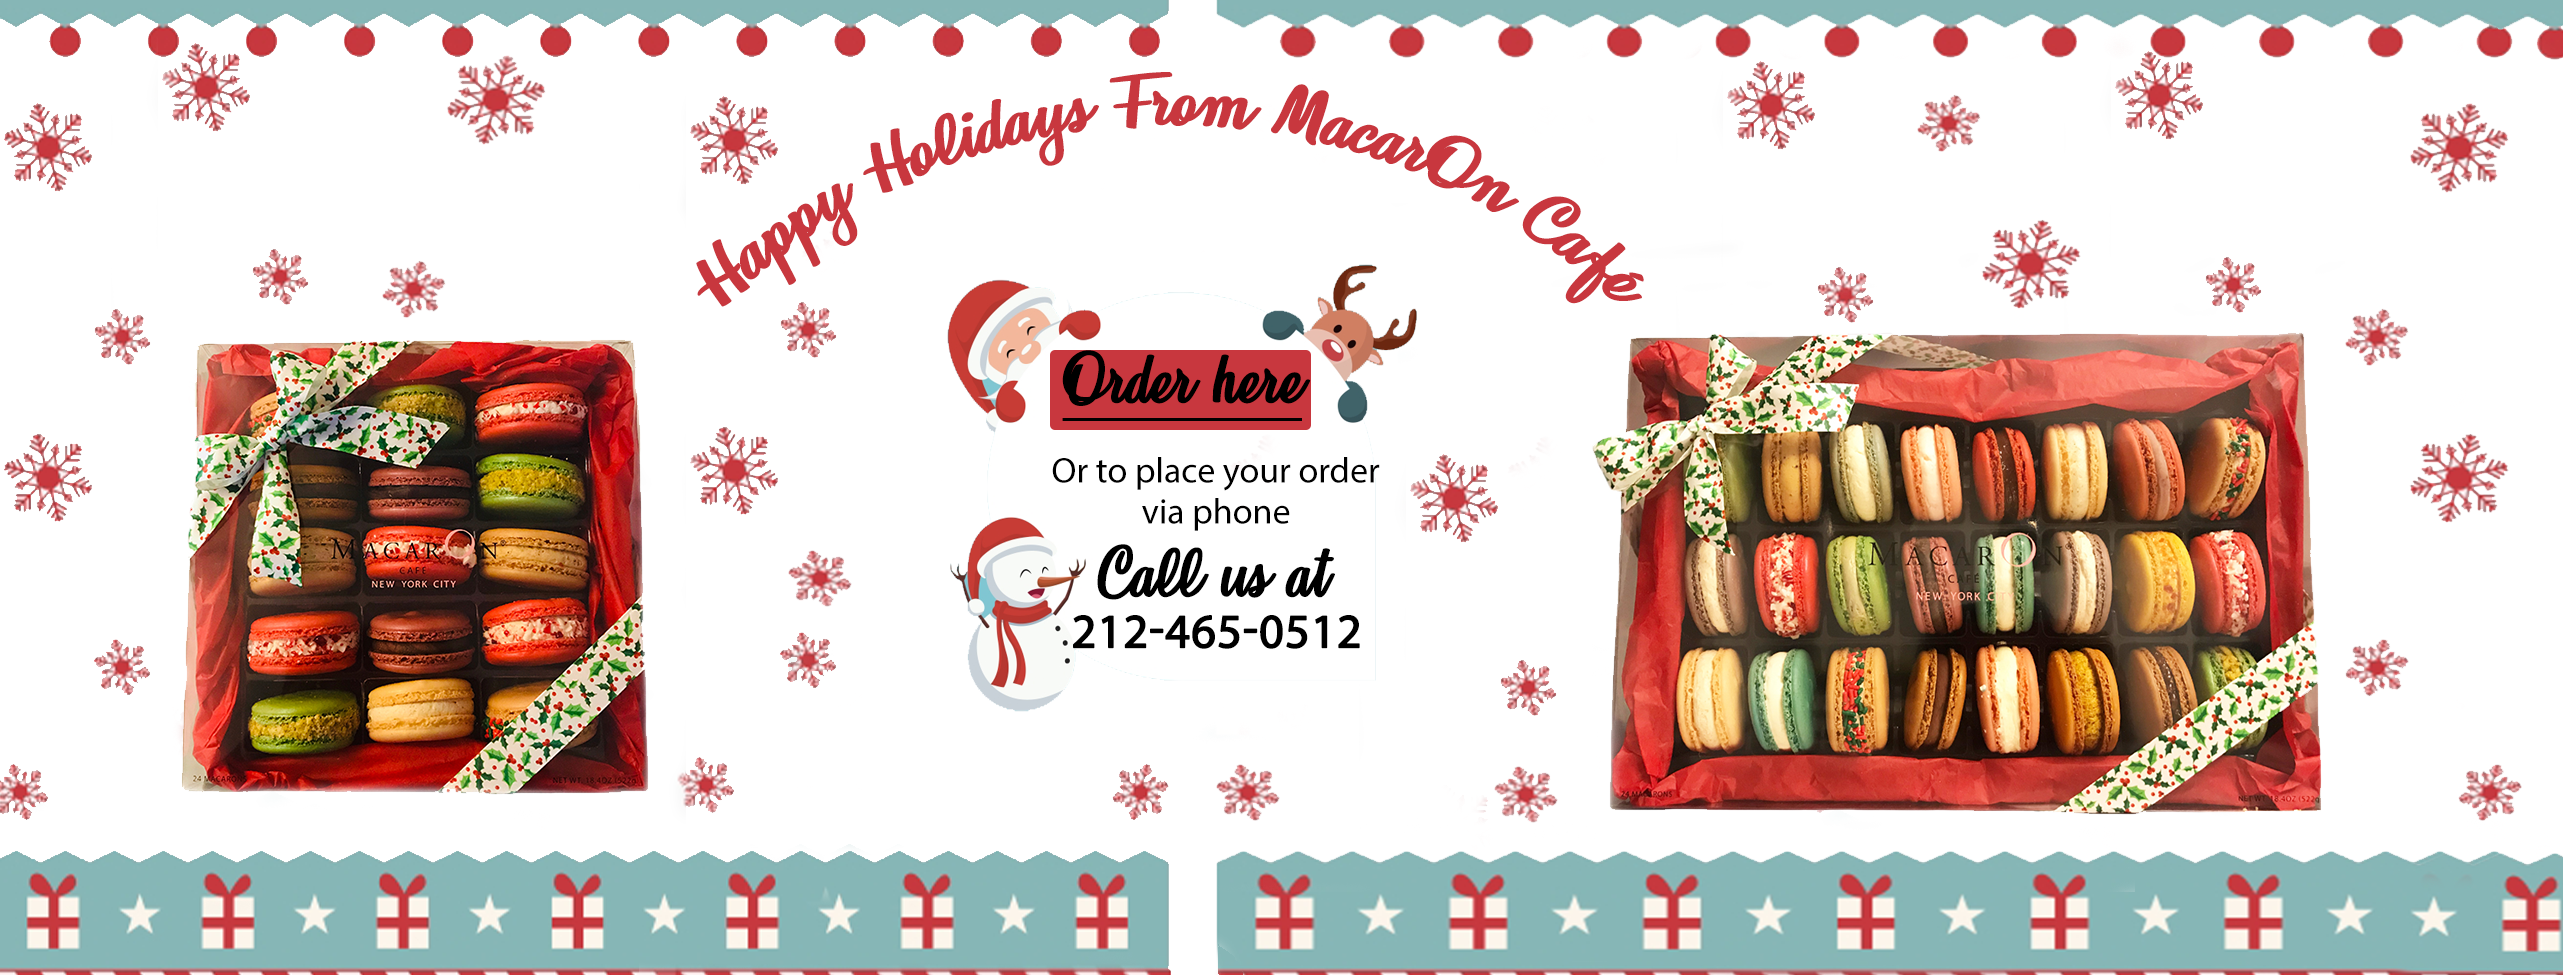 Holiday Banner 2019